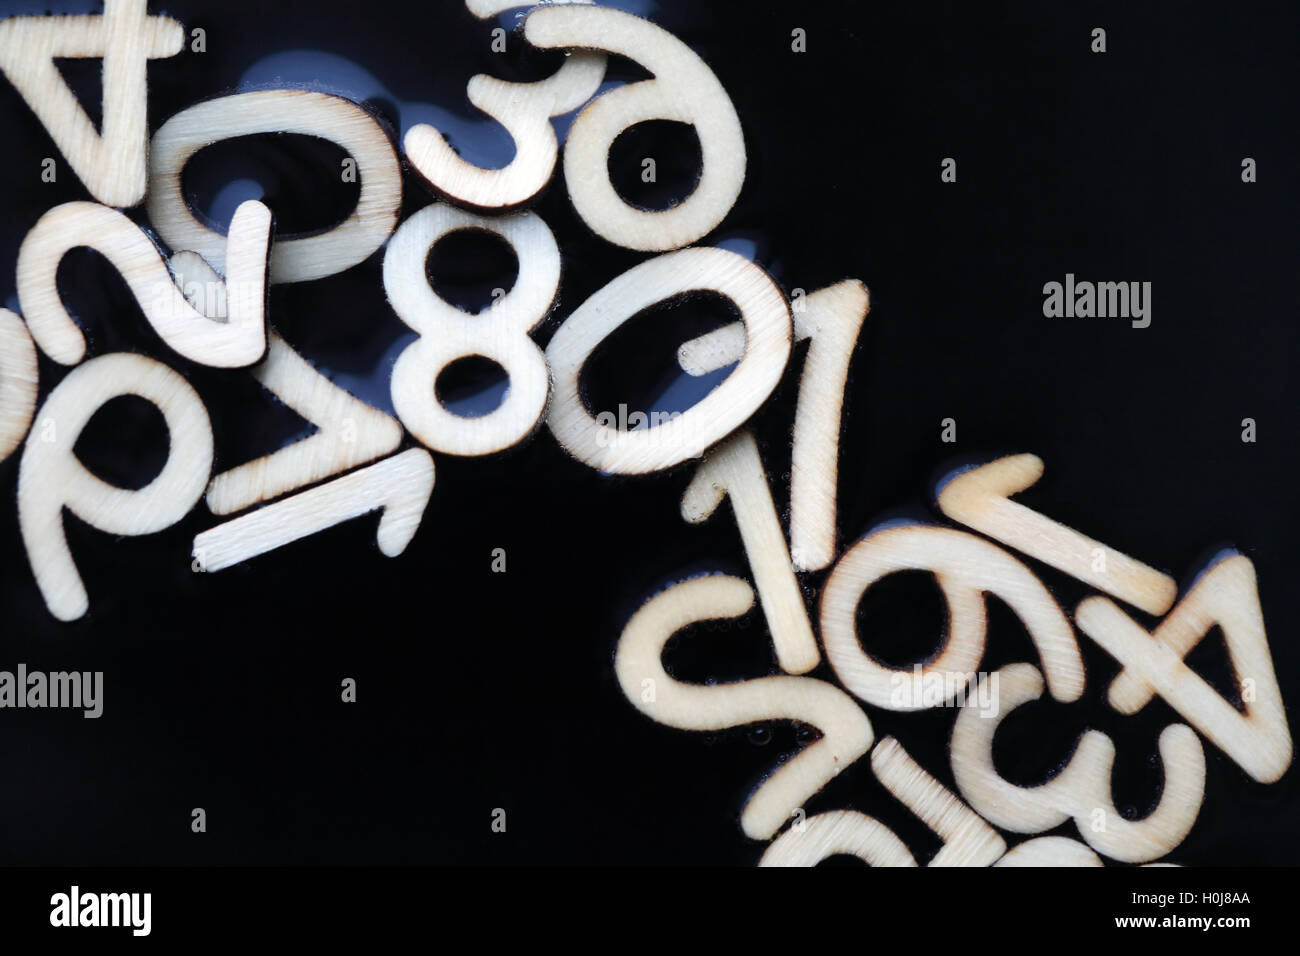 Numbers In Water - Stock Image